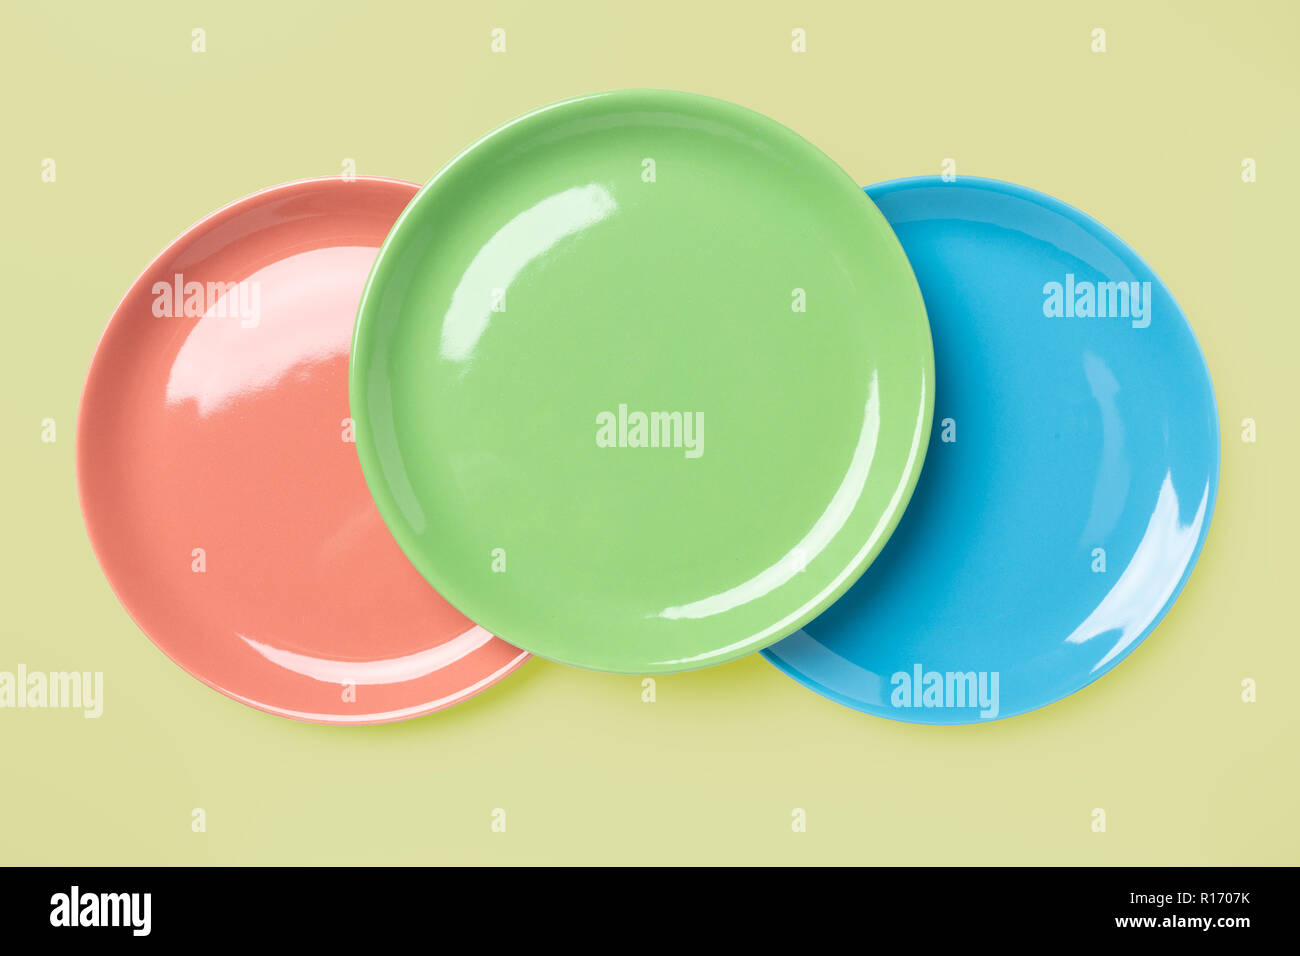 Couleur Bleu Vert Pastel blue, green and rose pastel colored plates on light yellow